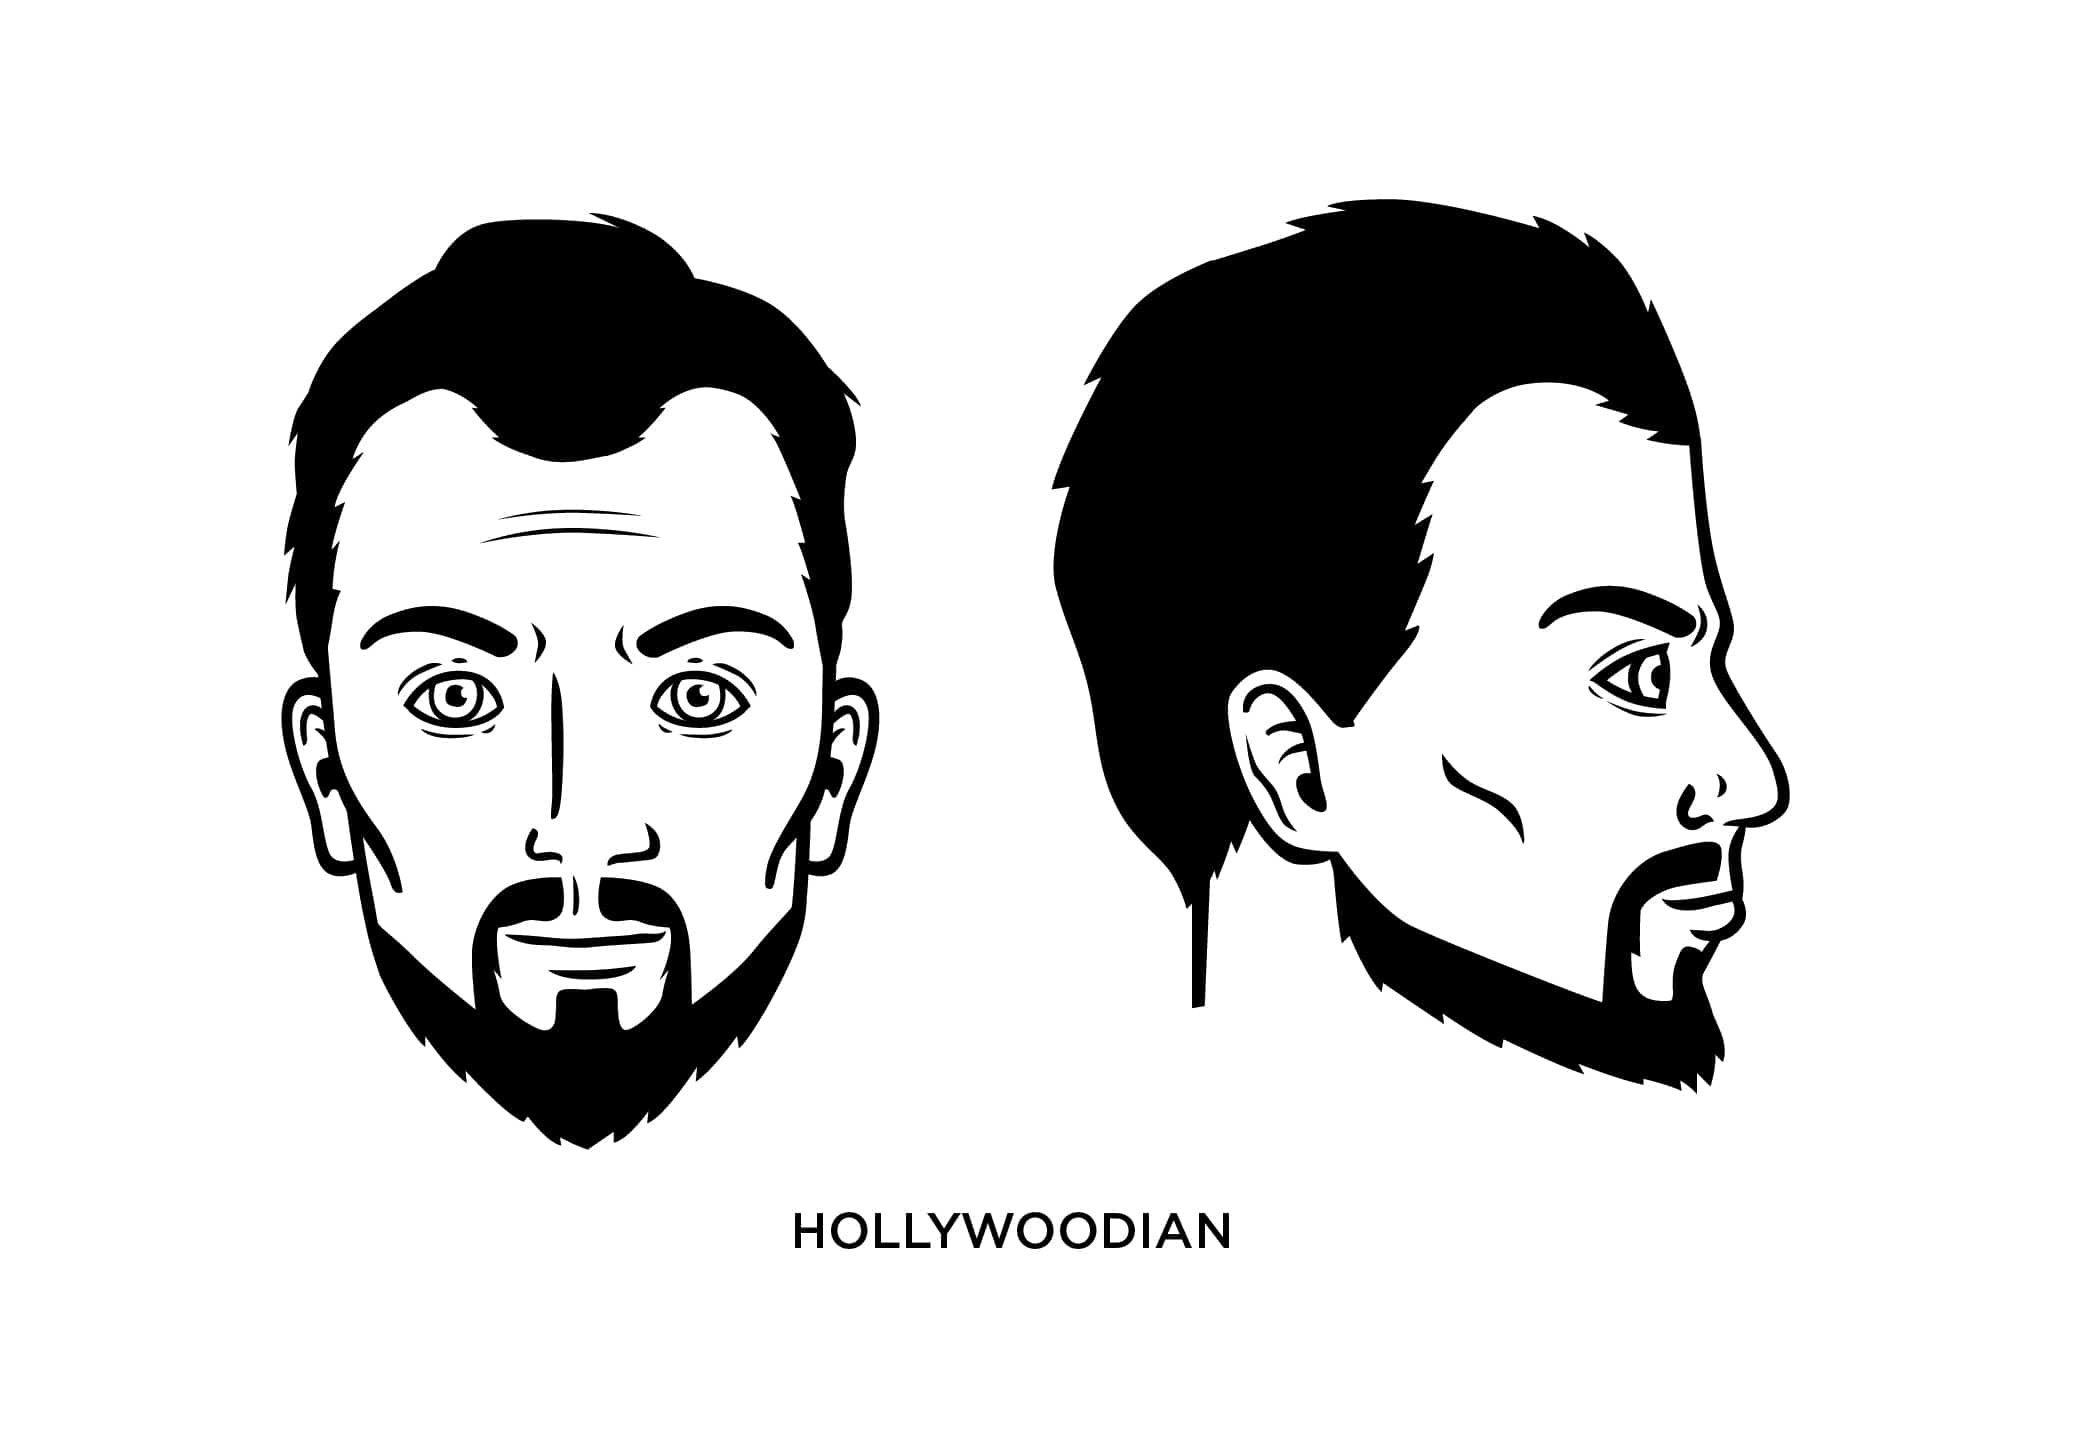 The Hollywoodian Beard Style: How to Grow, Guide, Examples